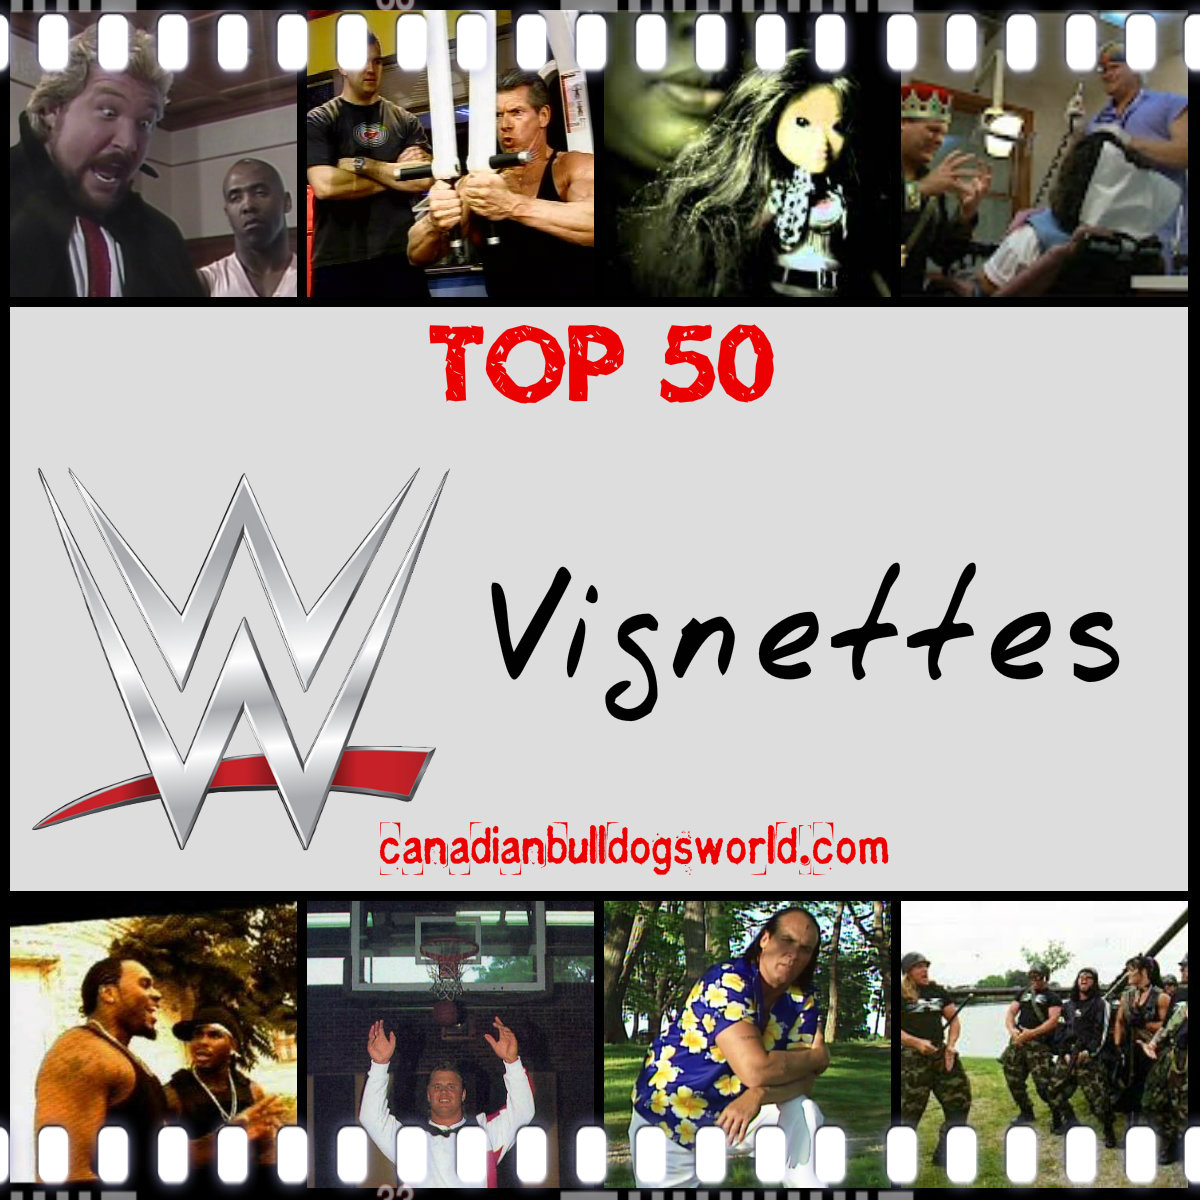 Top 50 WWE Vignettes